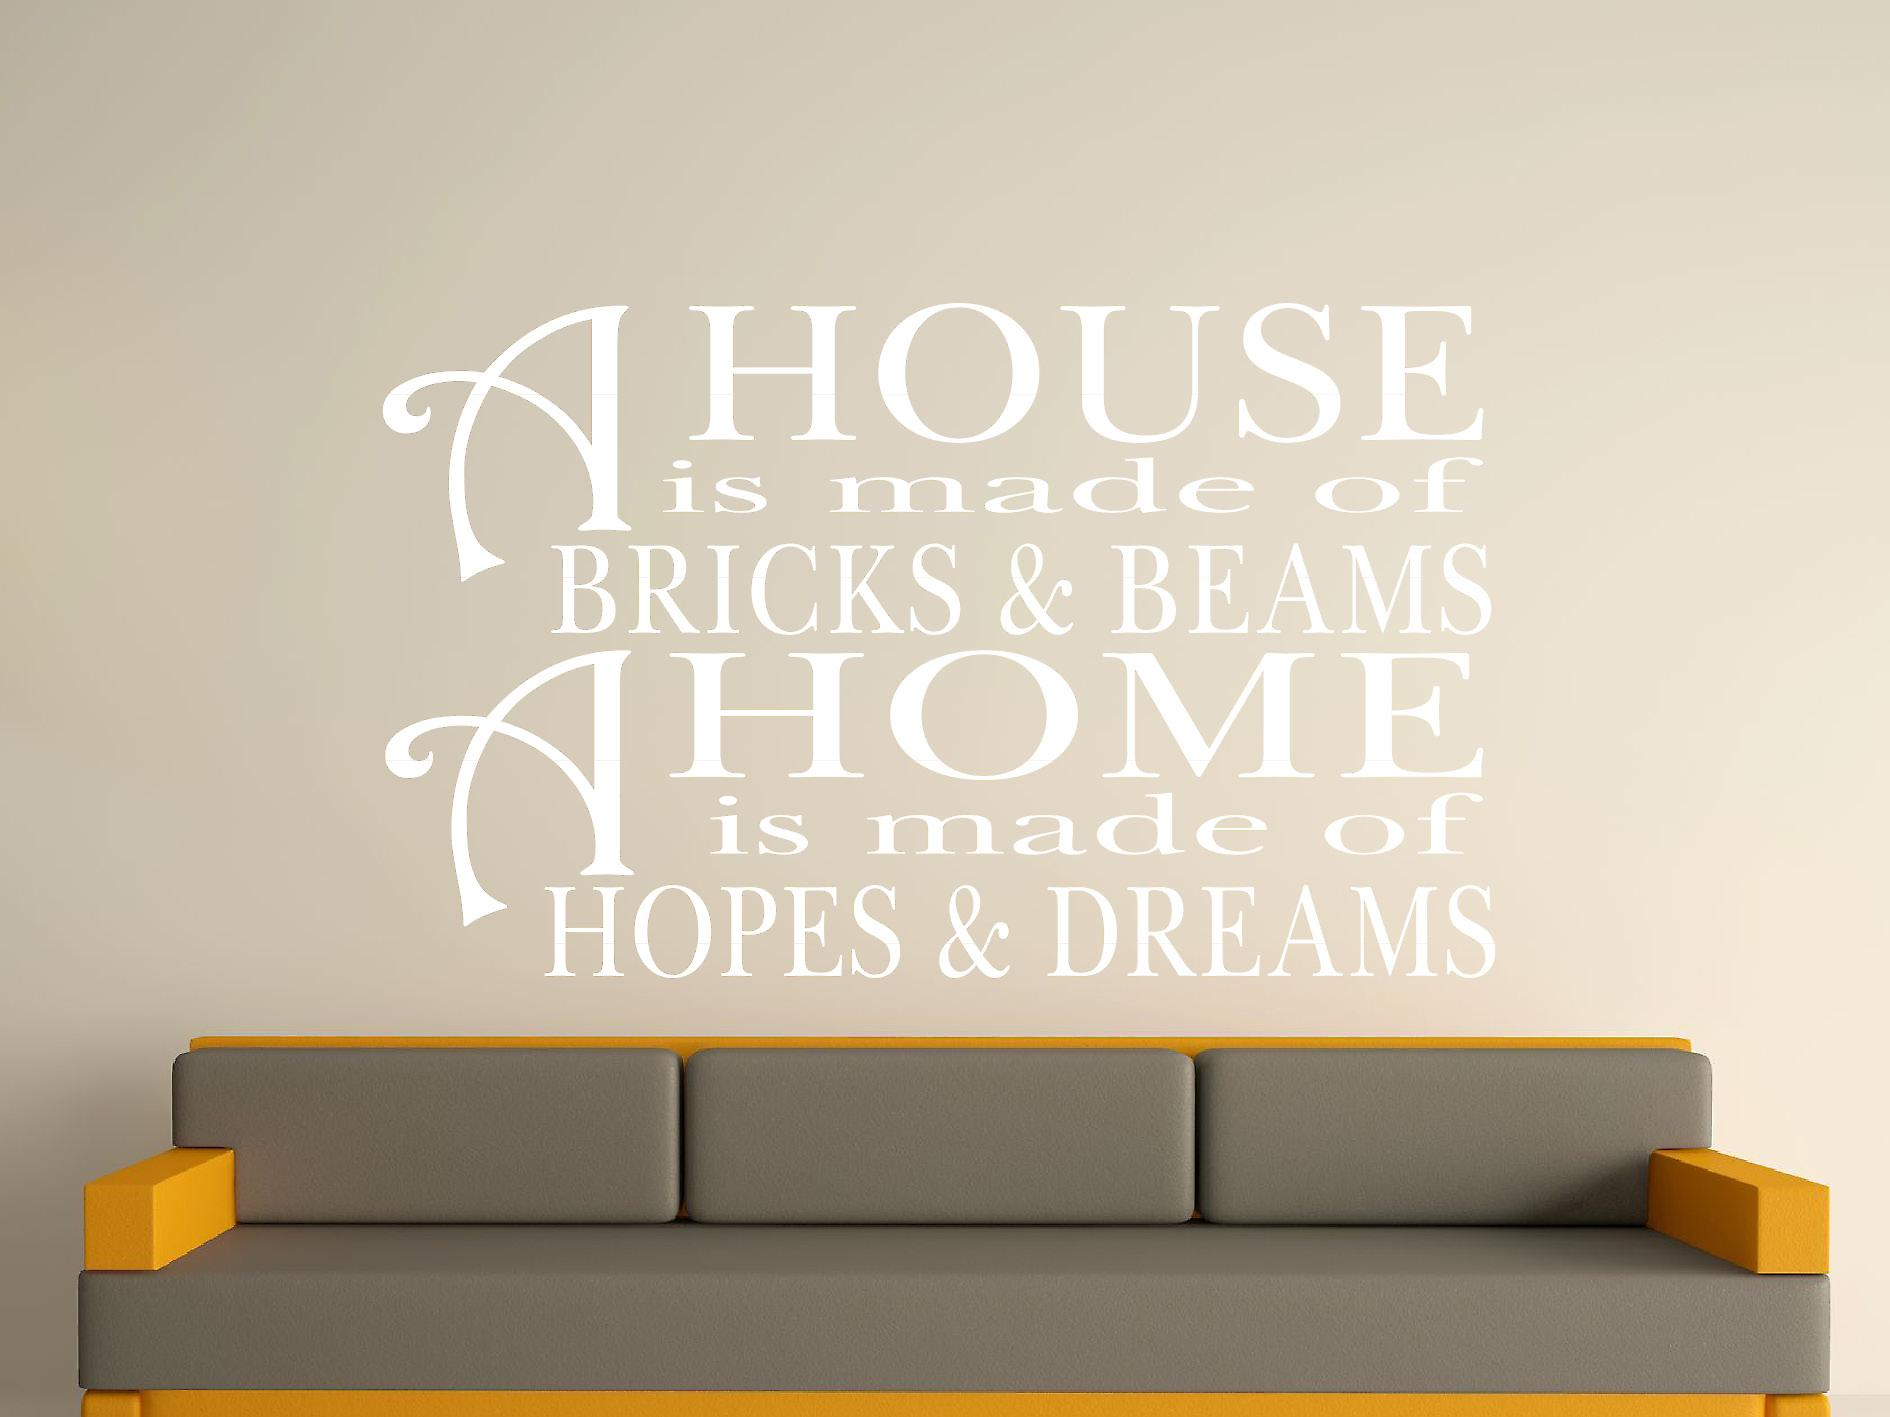 A House Is Made Of Bricks And Beams v2 Wall Art Sticker - White